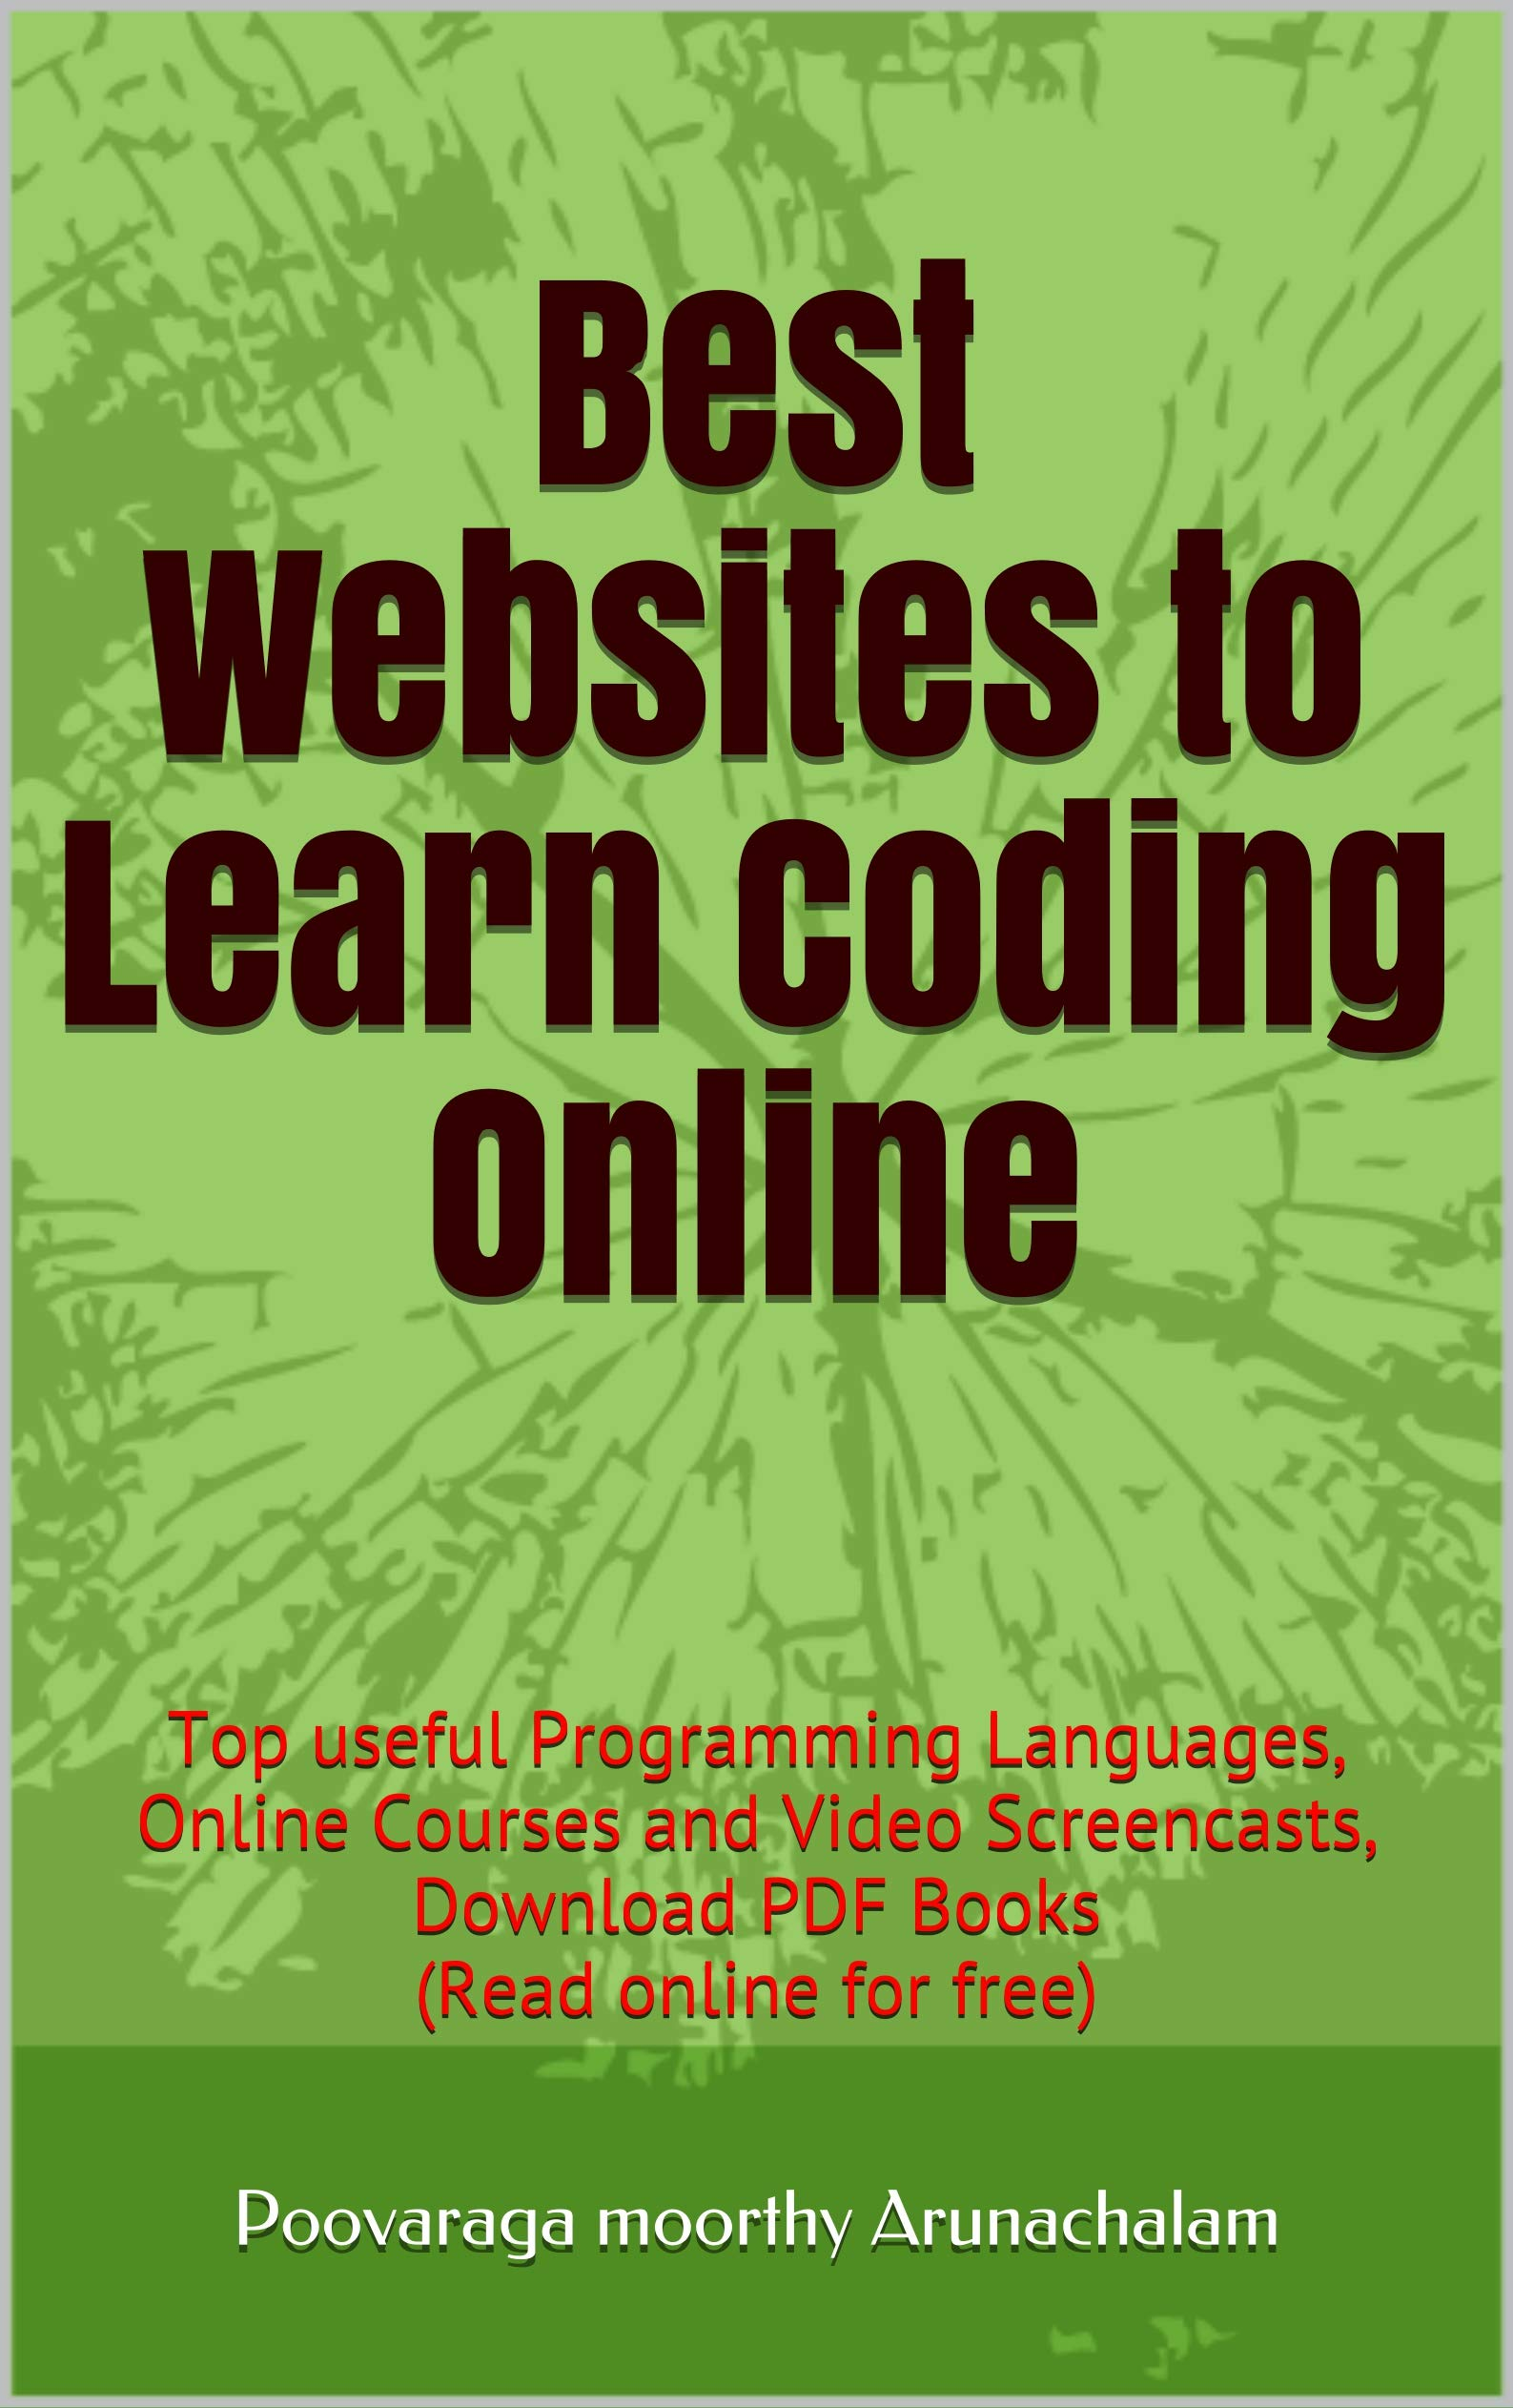 Best Websites to Learn Coding Online: Top useful Programming Languages, Online Courses and Video Screencasts, Download PDF Books